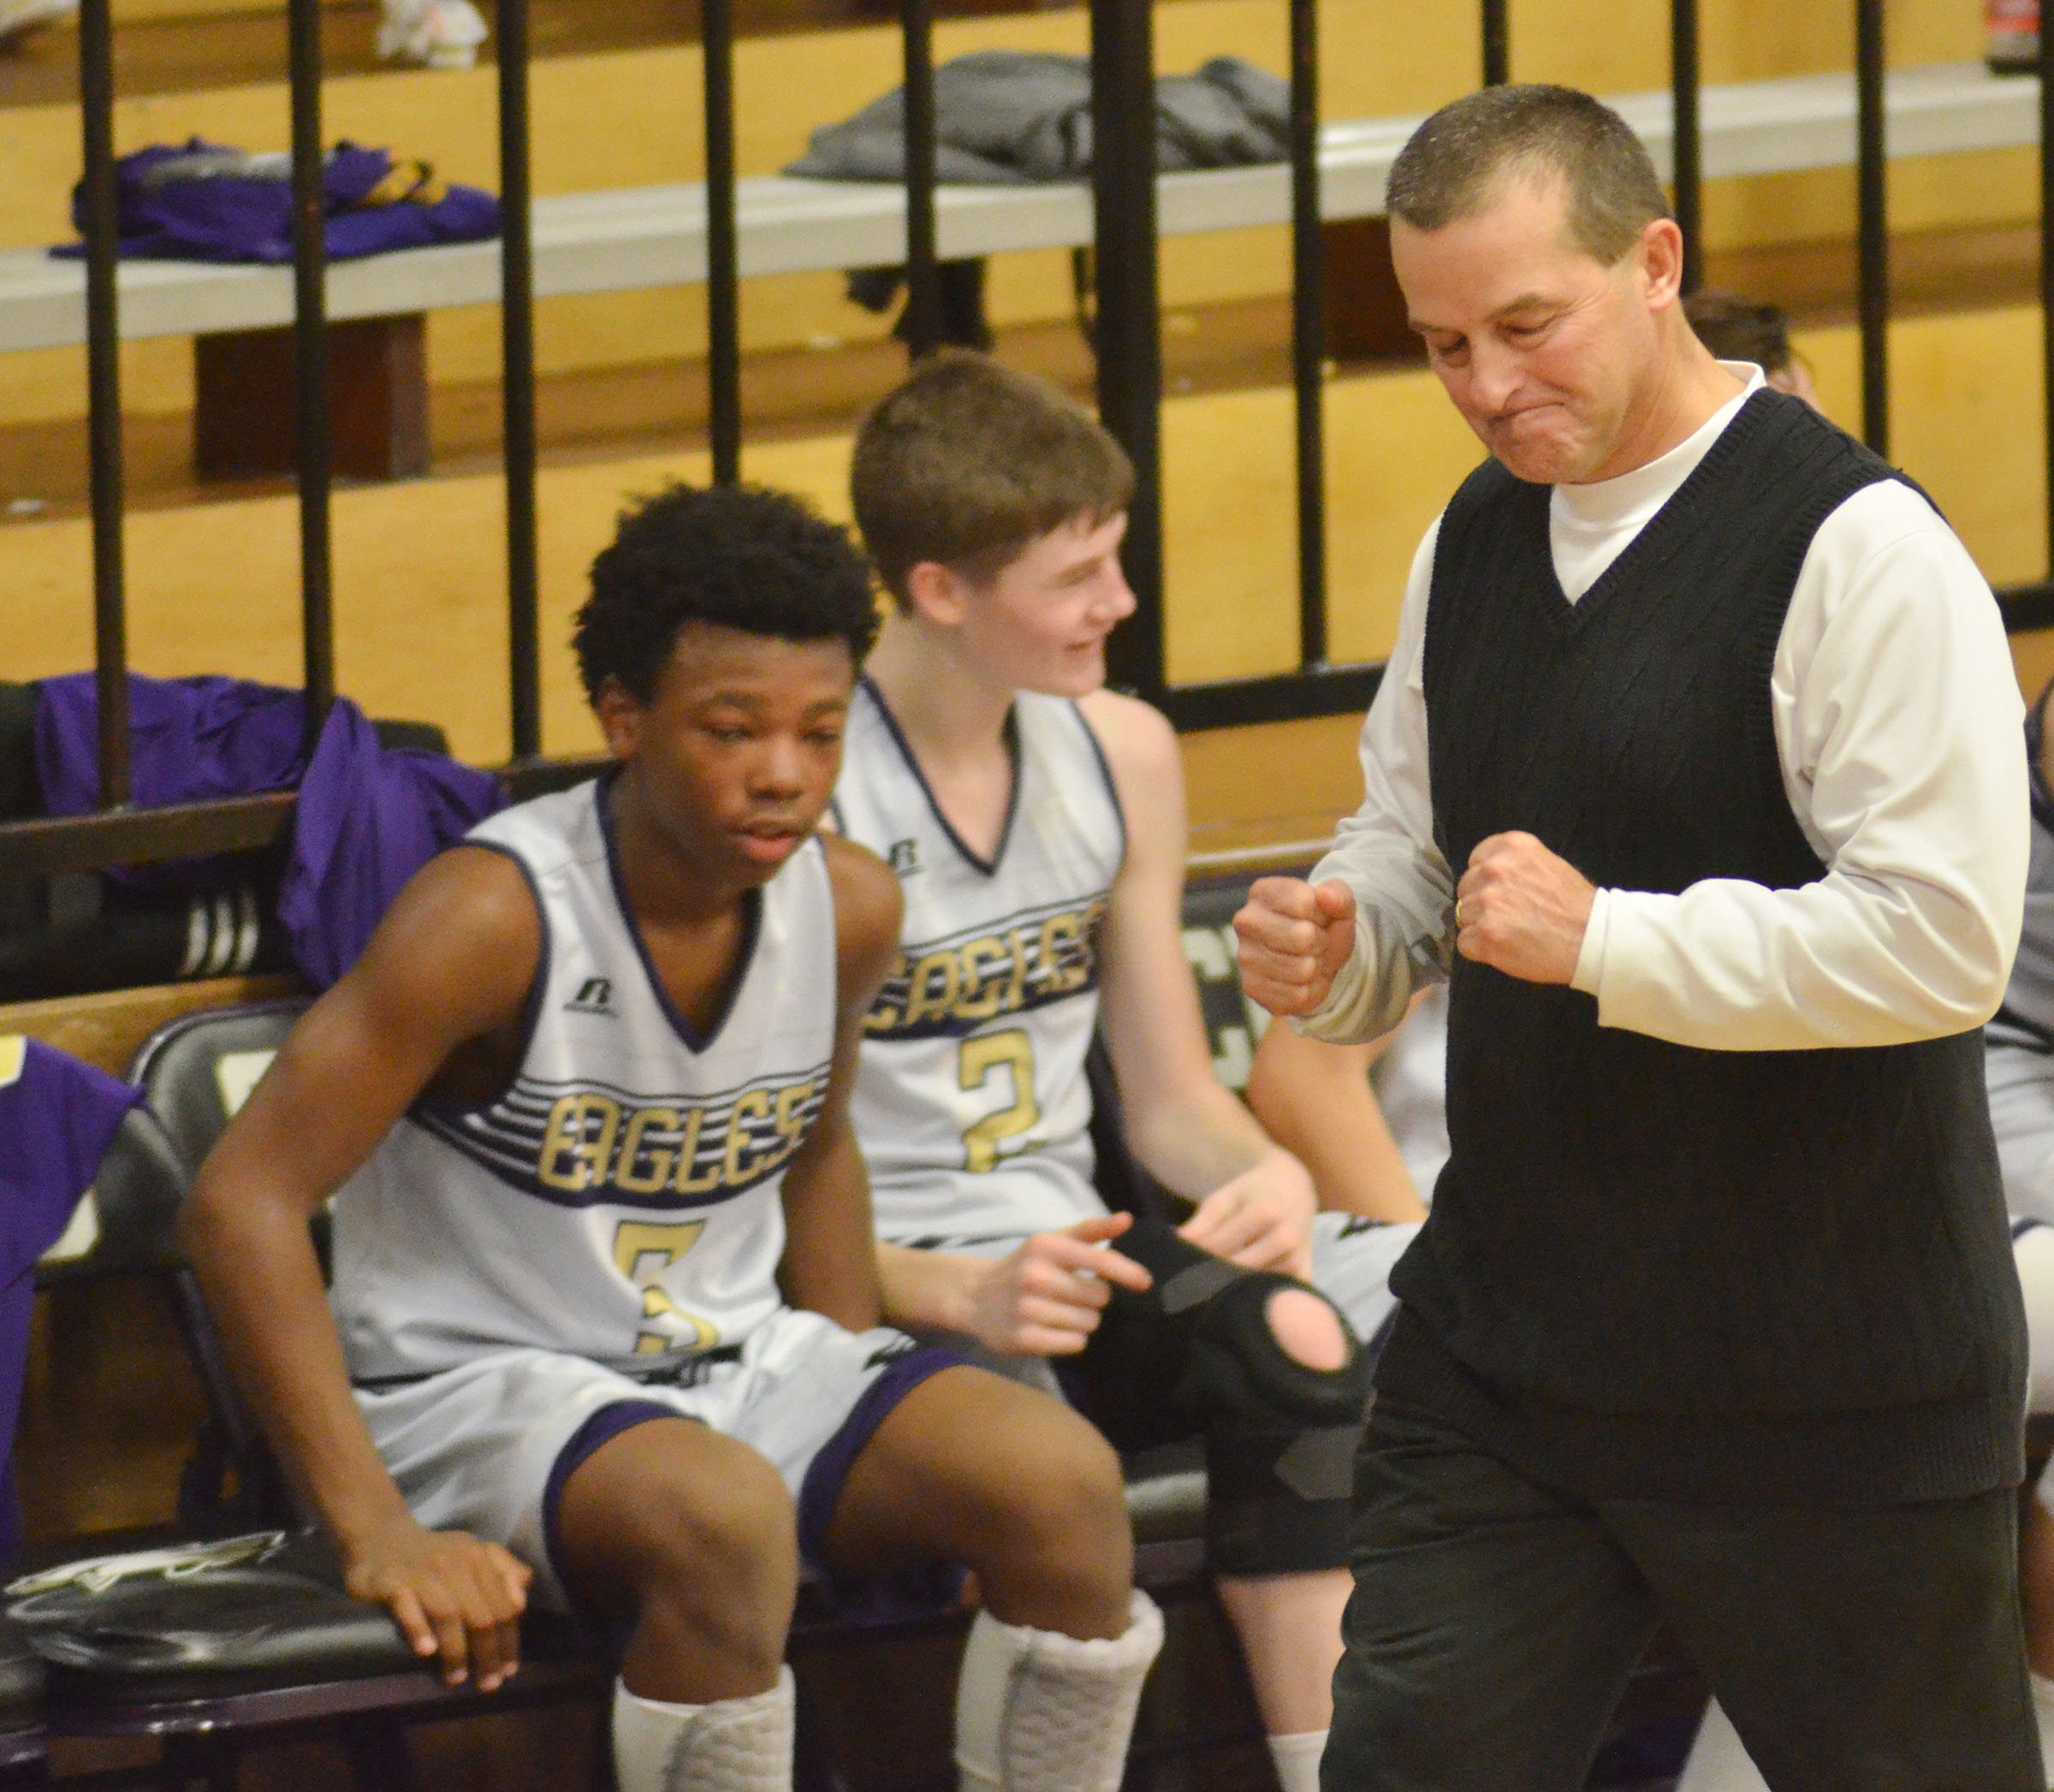 CMS boys' basketball coach Lynn Kearney reacts as his team wins its final game of the regular season and finishes as undefeated.